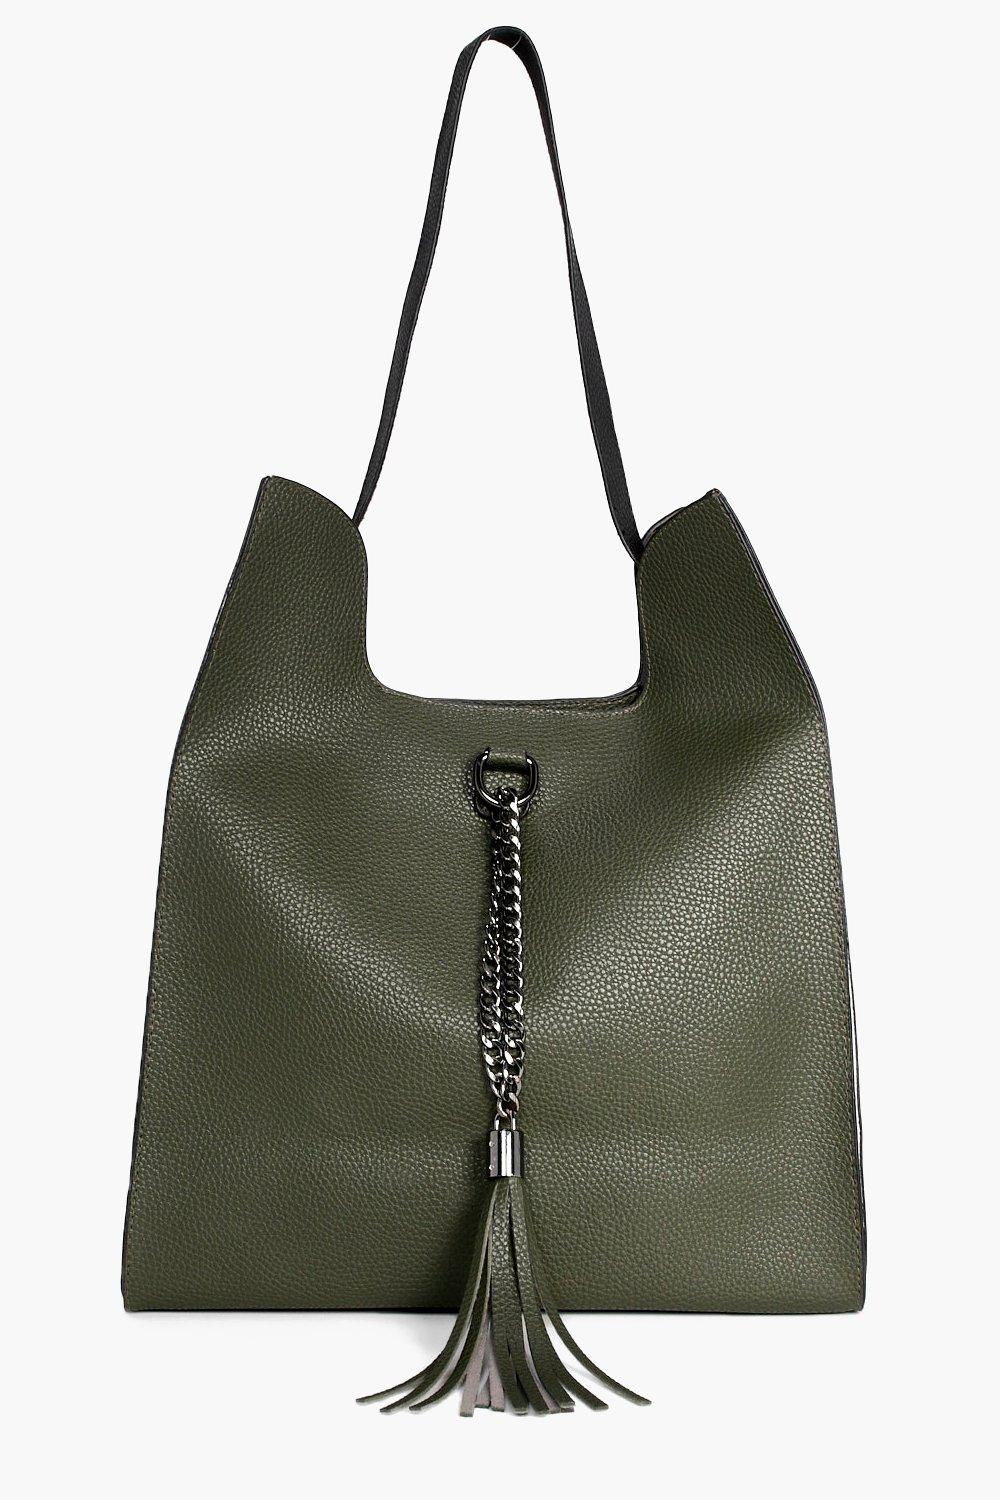 Colourblock Metal & Tassel Shopper Bag - khaki - S